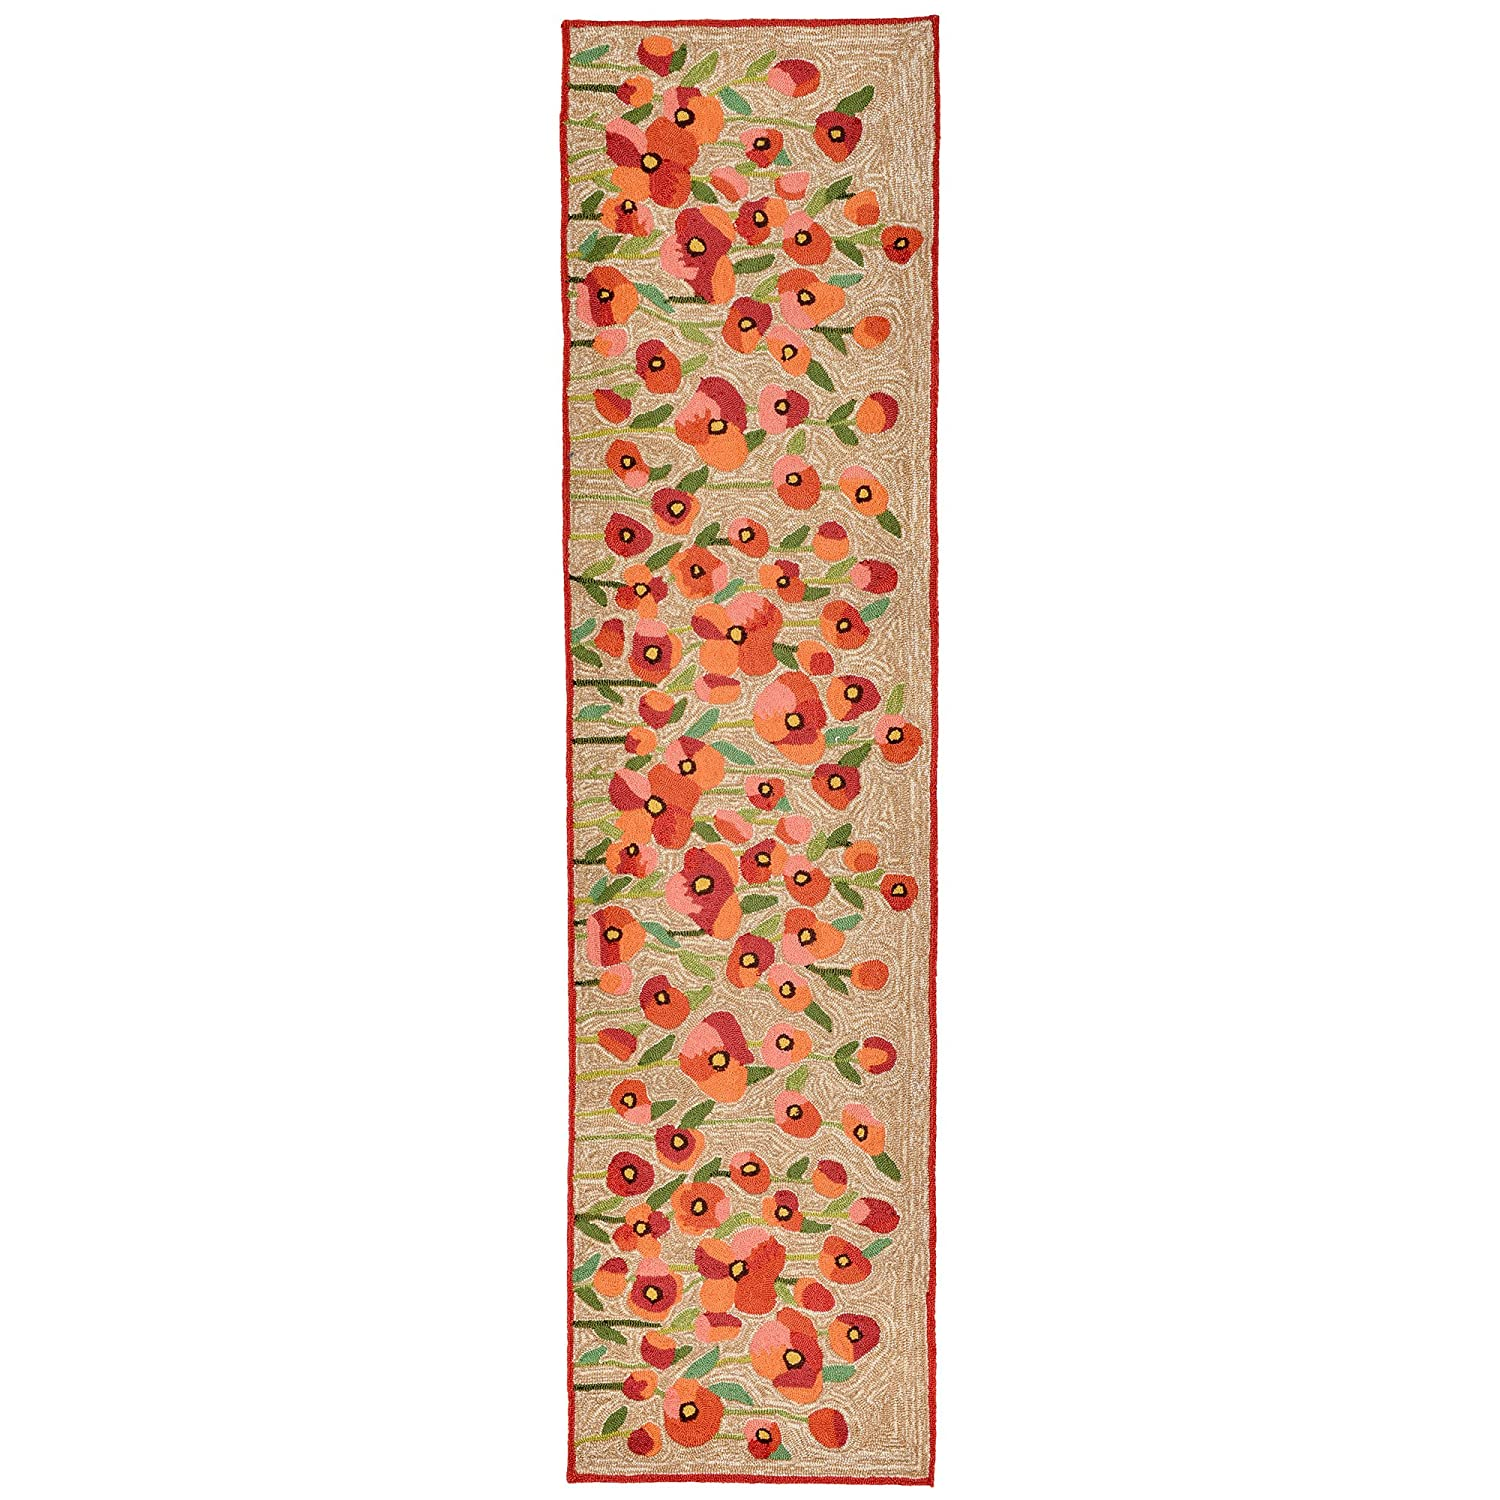 Liora Manne RV0R8A55924 Torello Dancing Flowers Rug, Runner, Red, 24x8' 24x8' The Trans Ocean Group